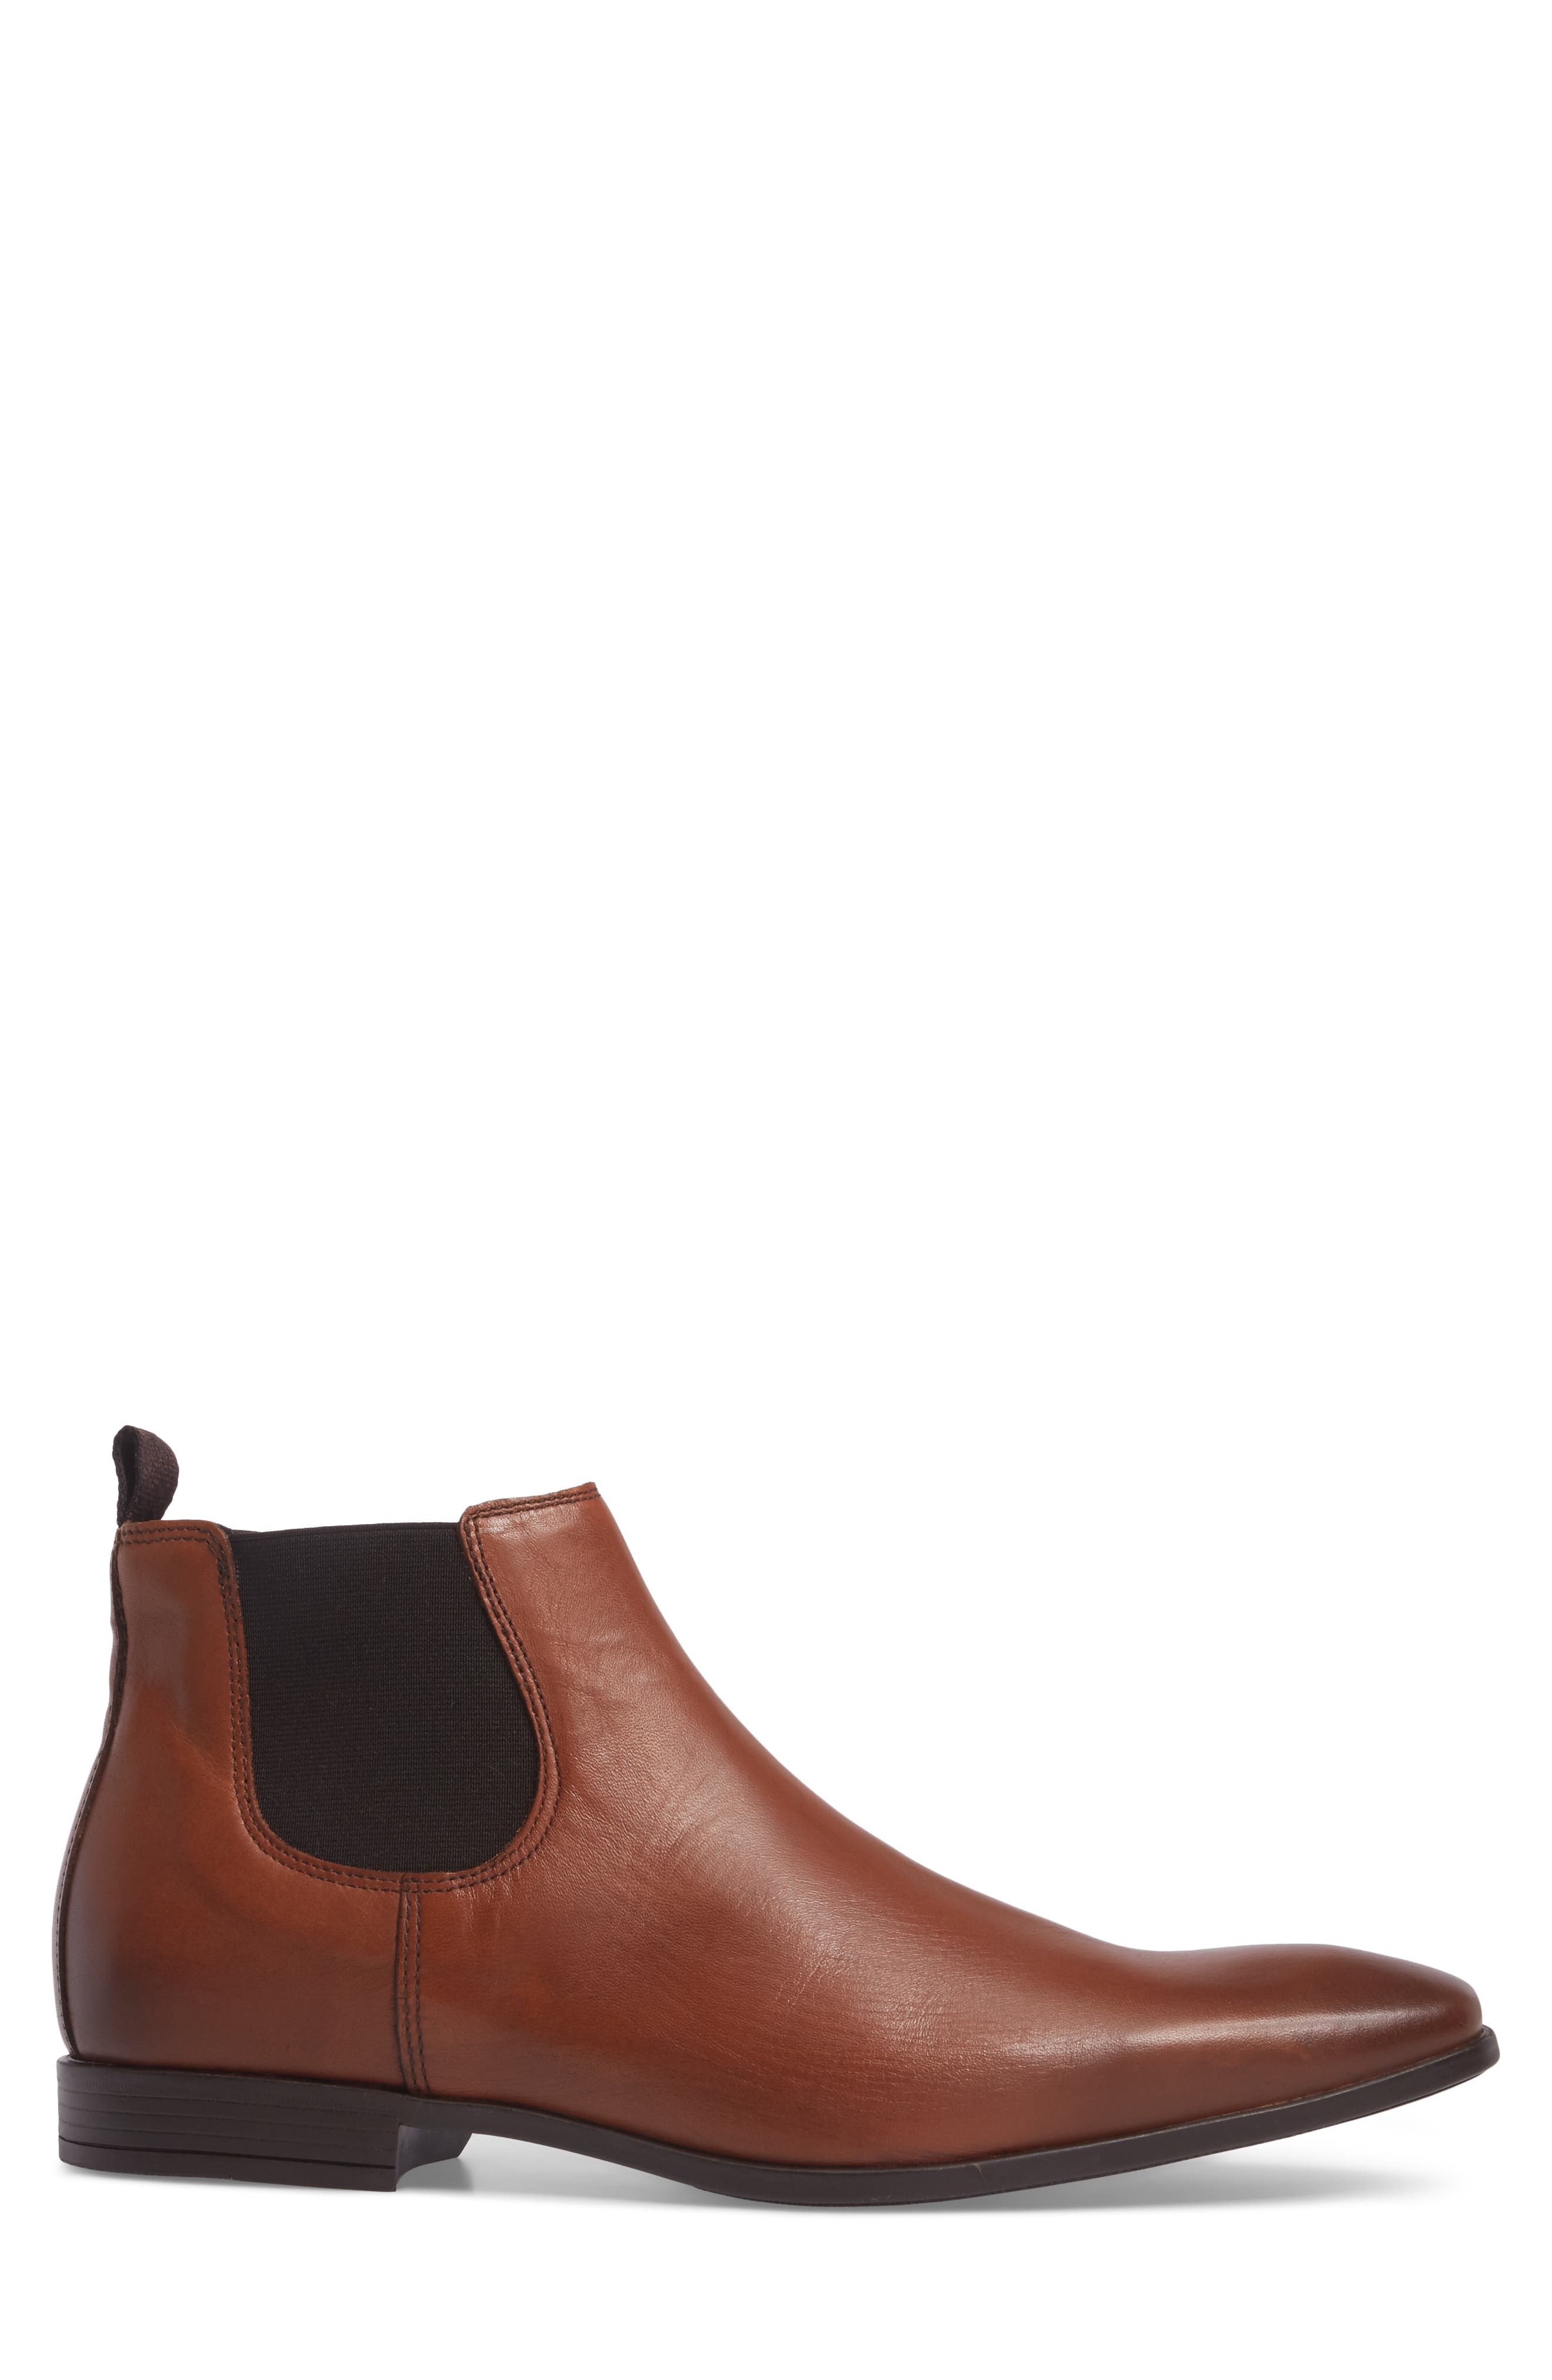 'Canton' Chelsea Boot,                             Alternate thumbnail 6, color,